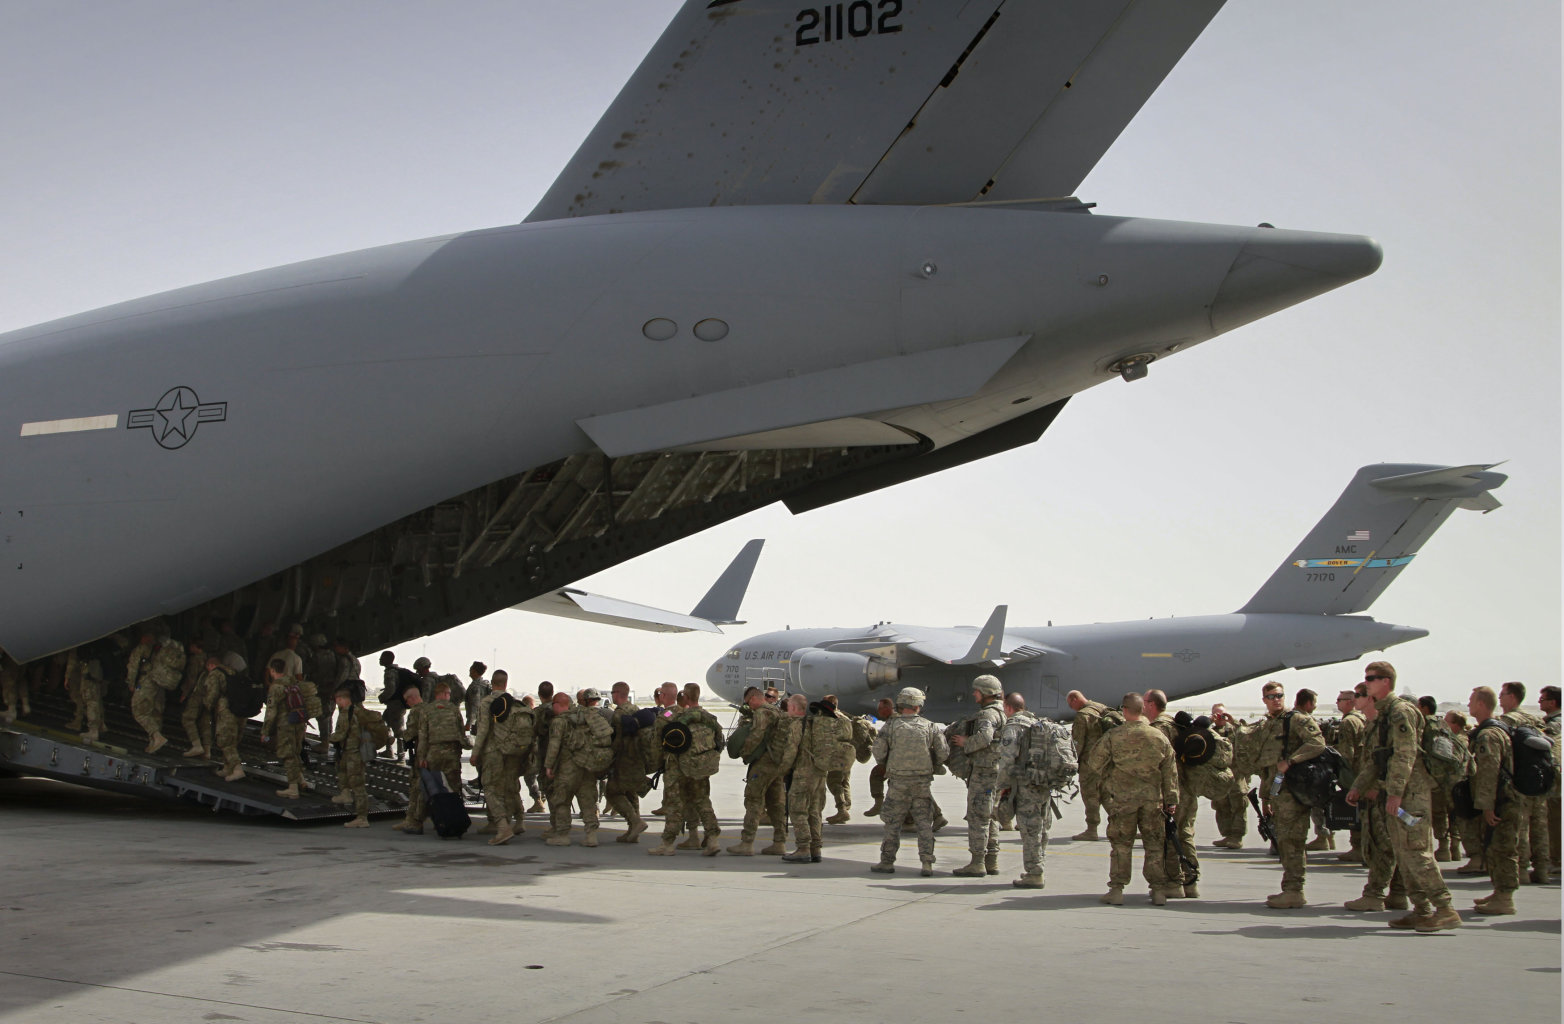 U.S. soldiers board a U.S. military plane, as they leave Afghanistan, at the U.S. base in Bagram north of Kabul, Afghanistan. The United States is not alone in pulling combat troops off the Afghan battlefield. More than a dozen other countries have draw down plans that combined with the U.S. withdrawal will shrink the foreign military footprint in Afghanistan by more than 40,000 troops by the close of next year.